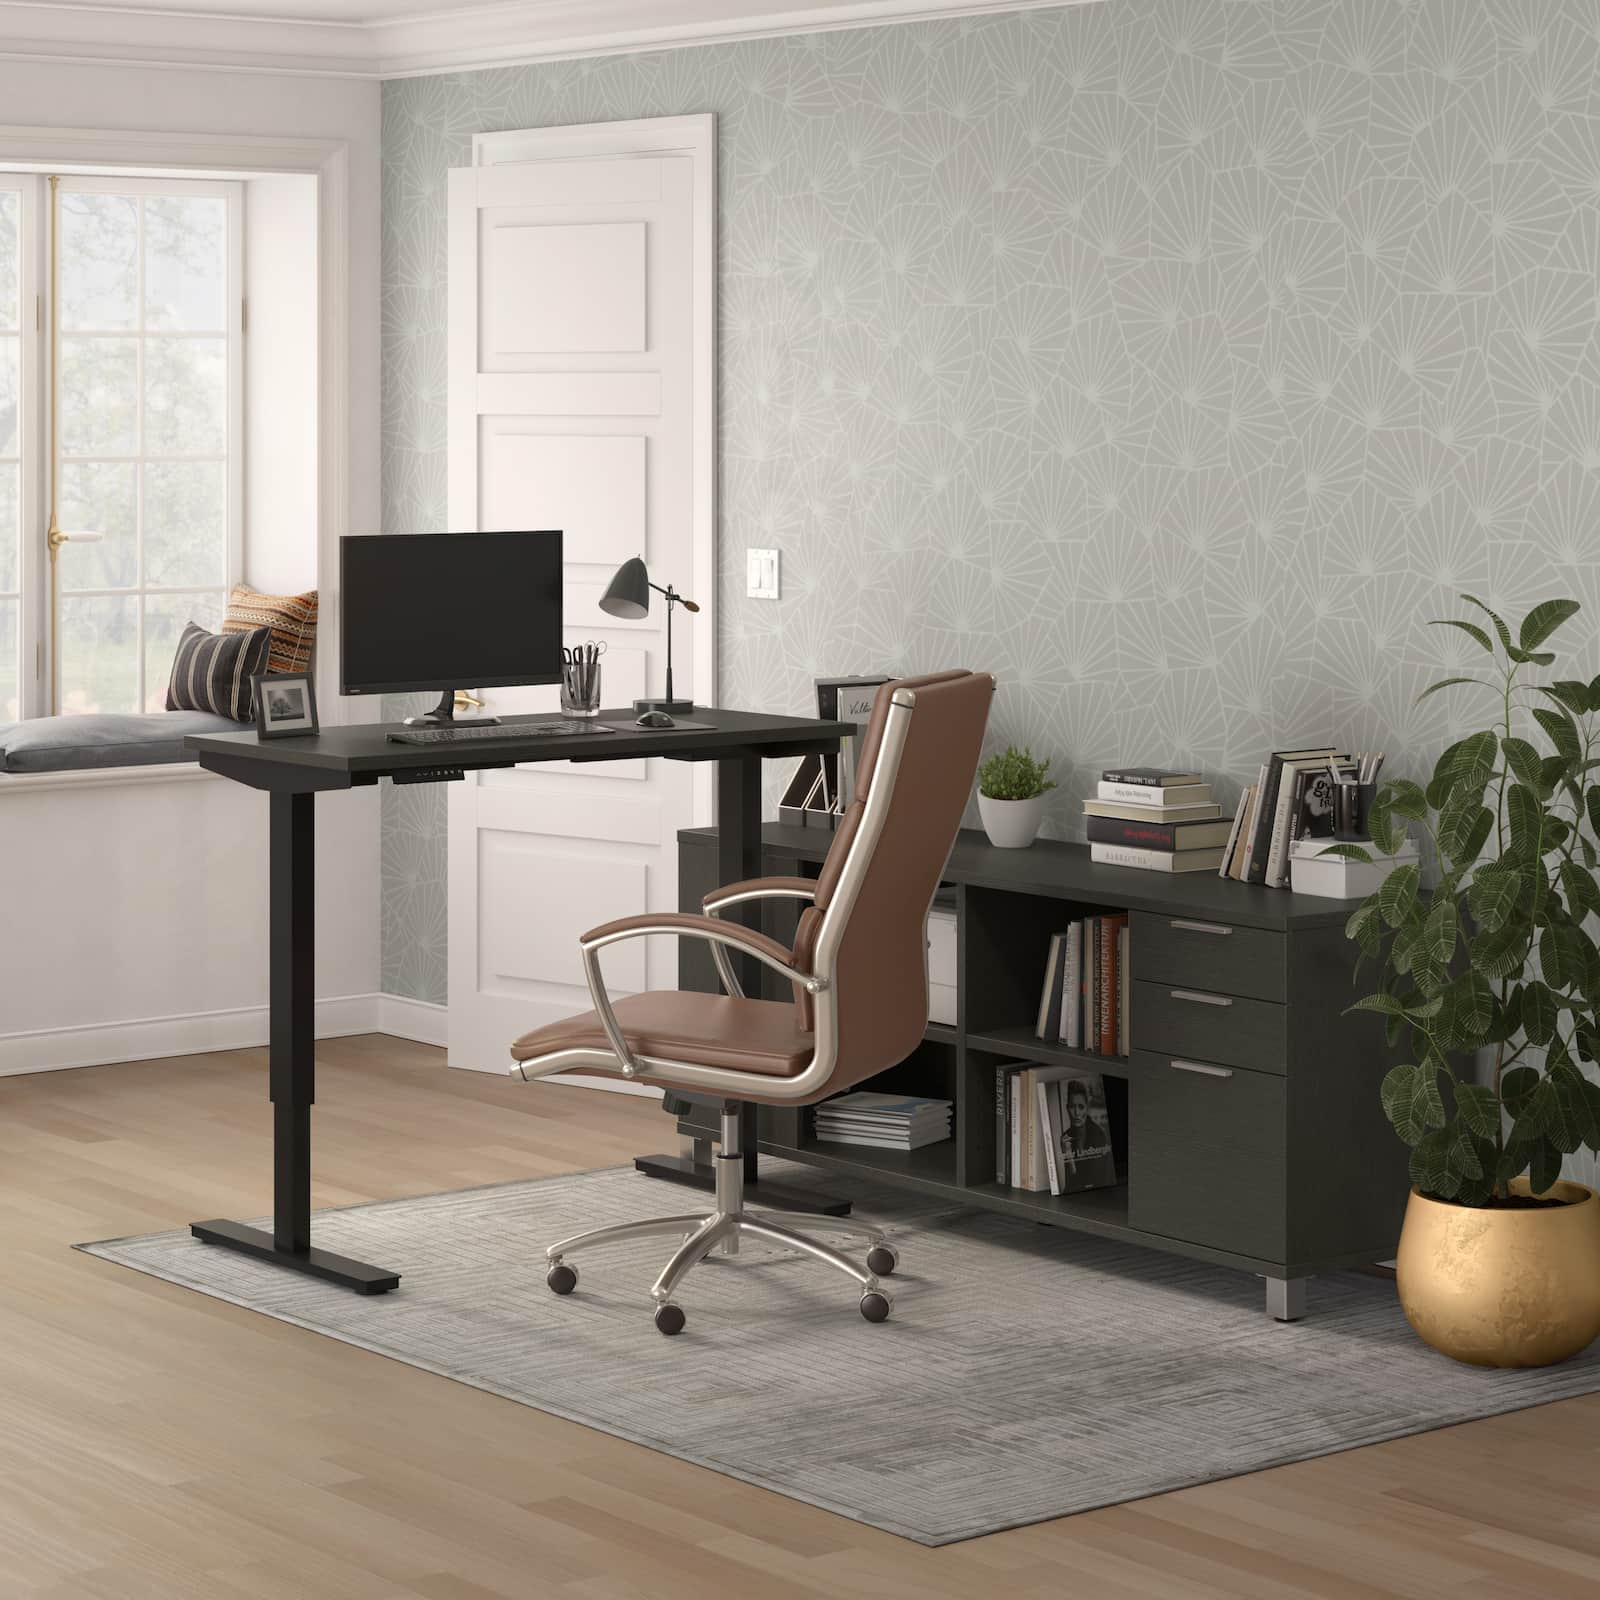 Create an Ergonomic and Efficient Home Office with a Standing Desk with Storage